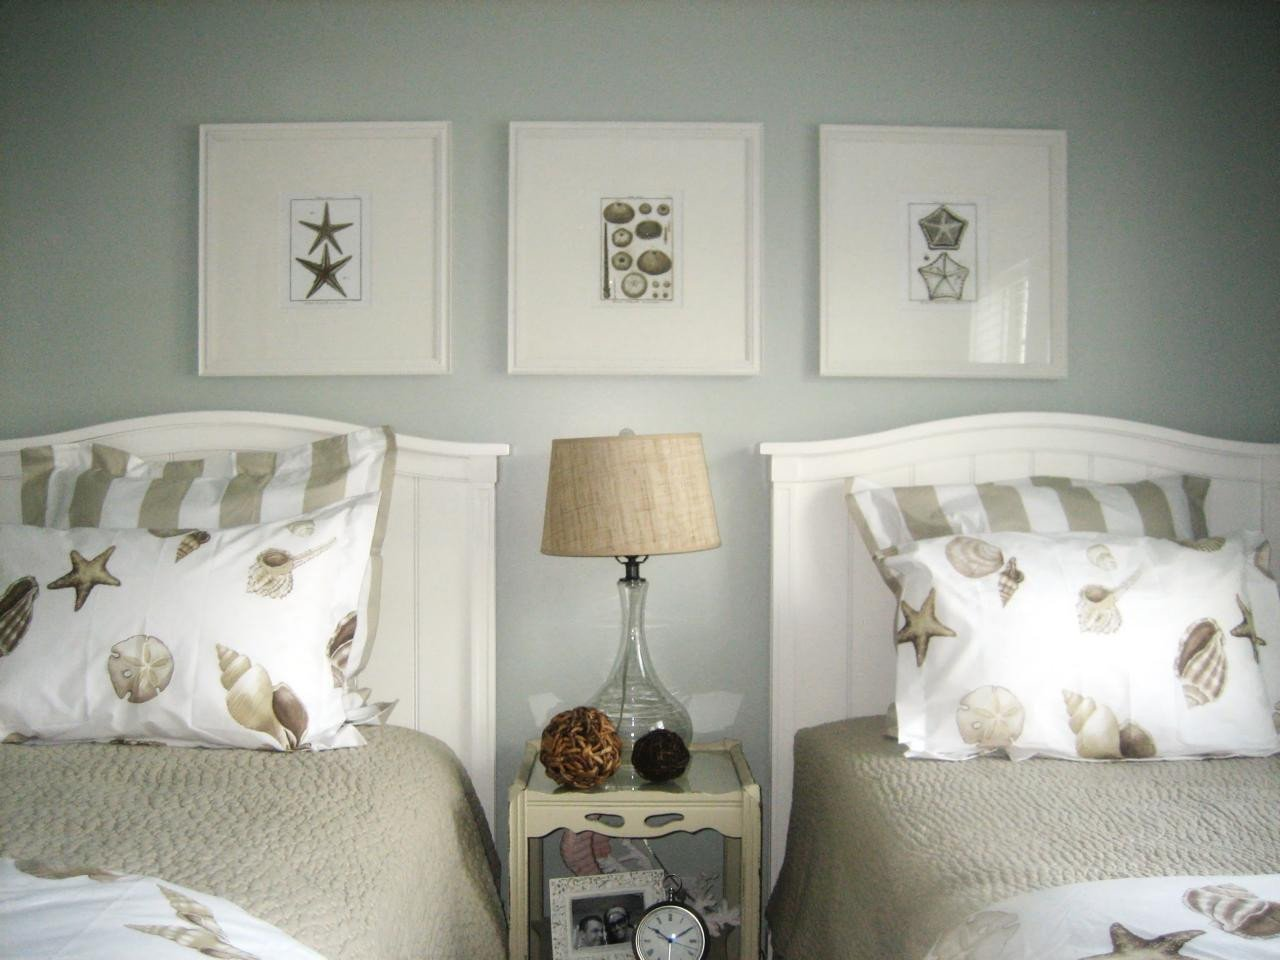 Beach Wall Decor for Bedroom Unique Beach Decor Ideas for Home Interior Design Styles and Color Schemes for Home Decorating